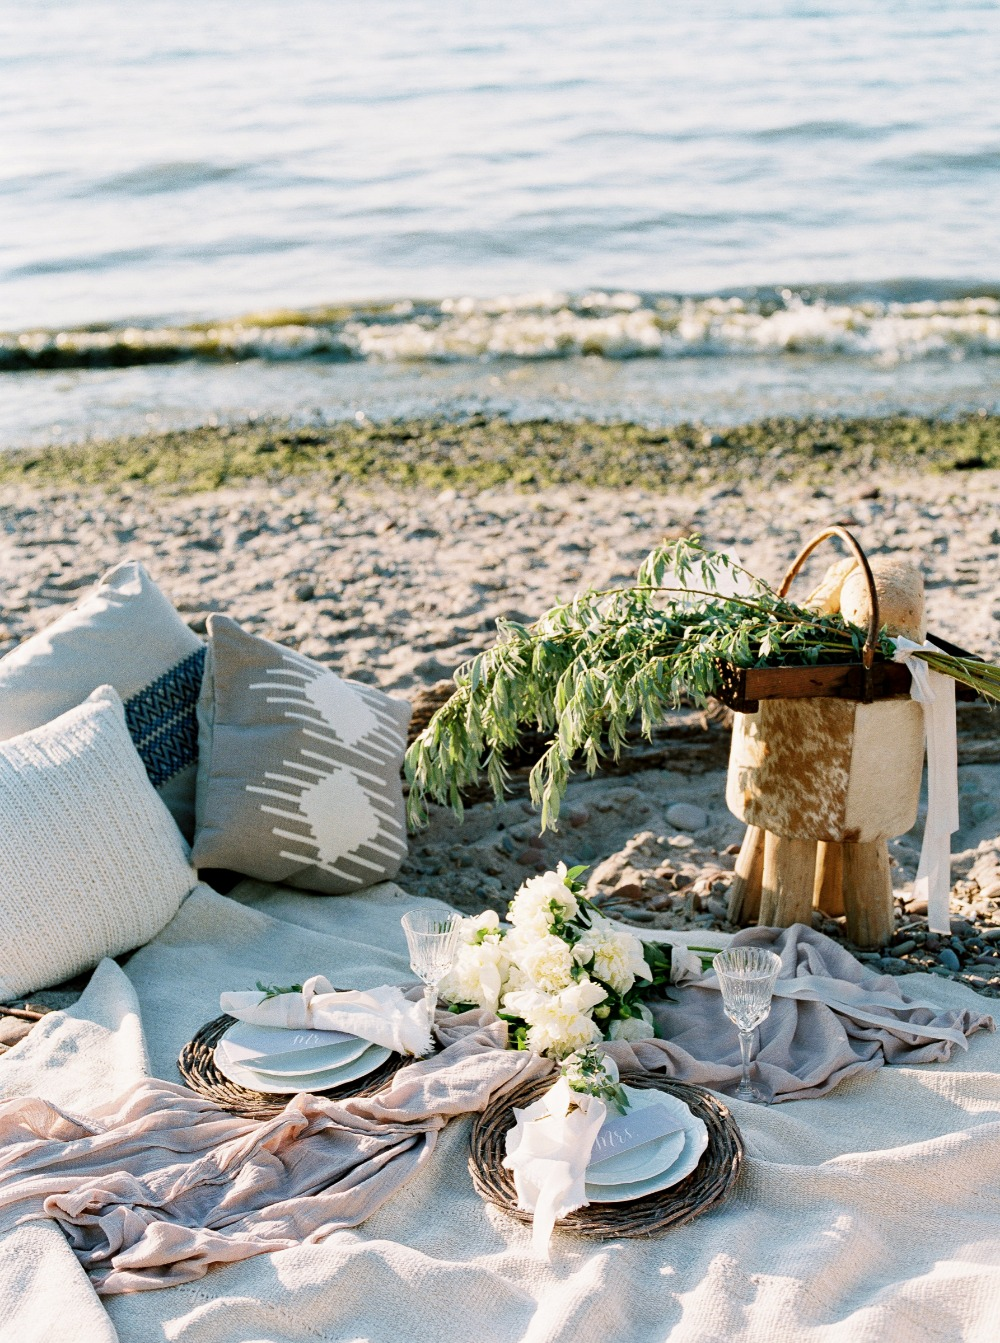 Cozy beach picnic for two